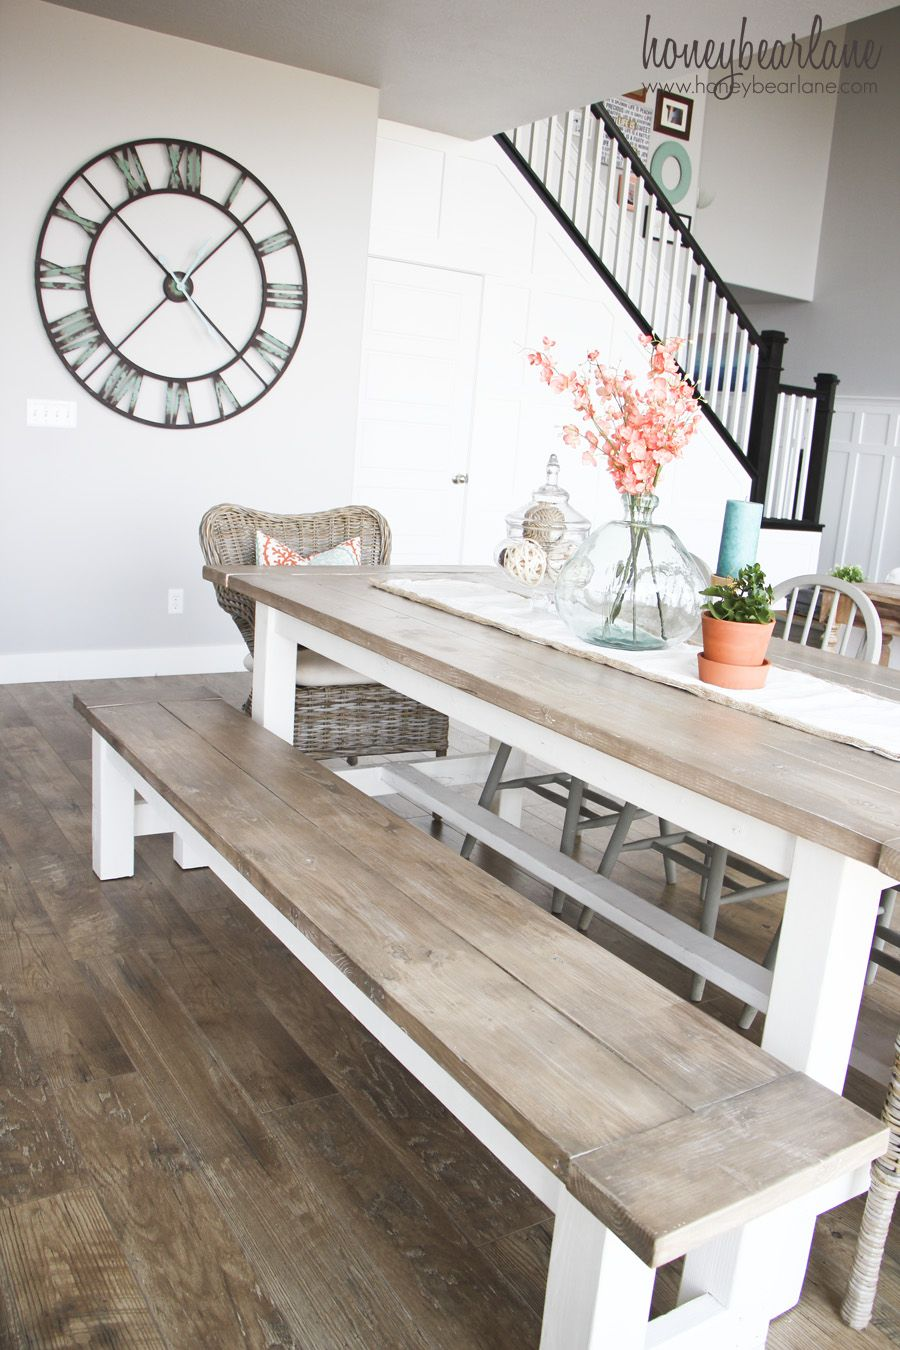 Diy Farmhouse Table And Bench Rustic Farmhouse Table Diy